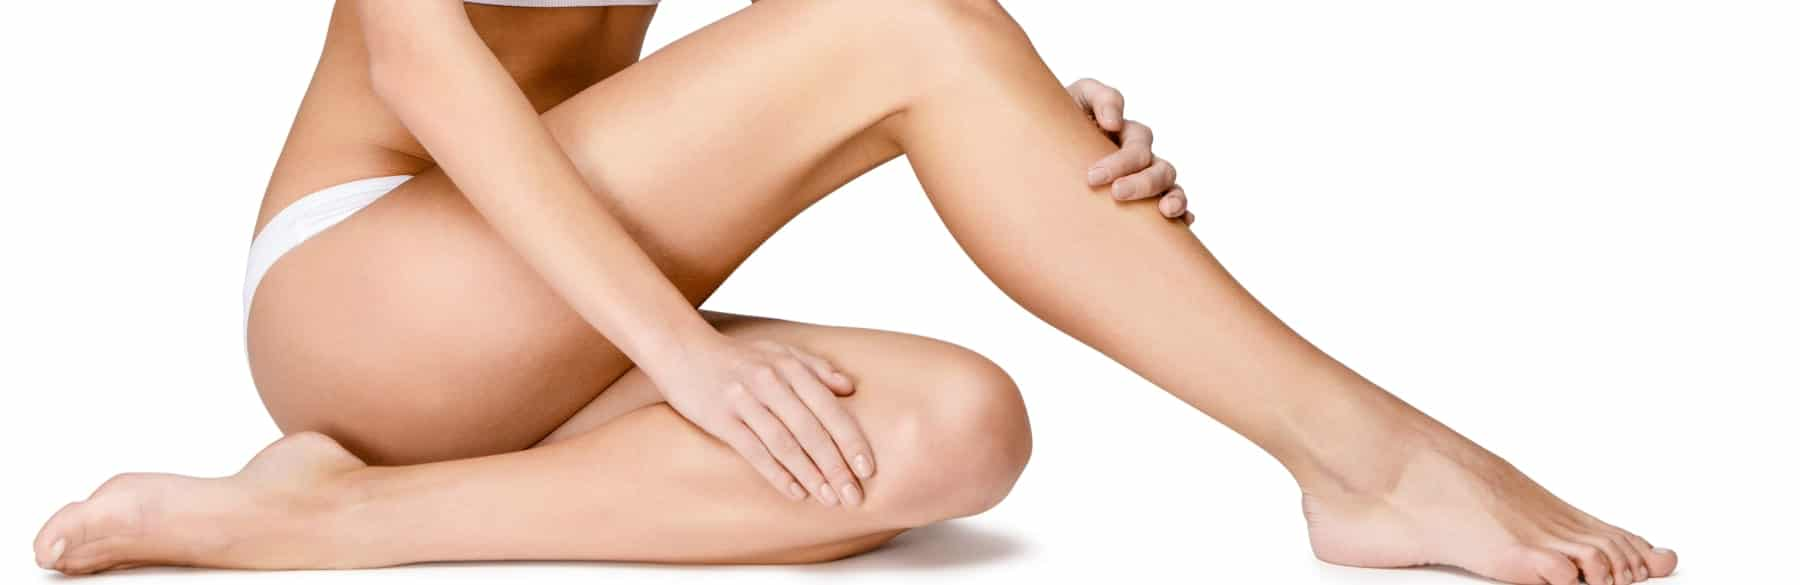 Laser Hair Removal for Women at The Spa Therapy Room